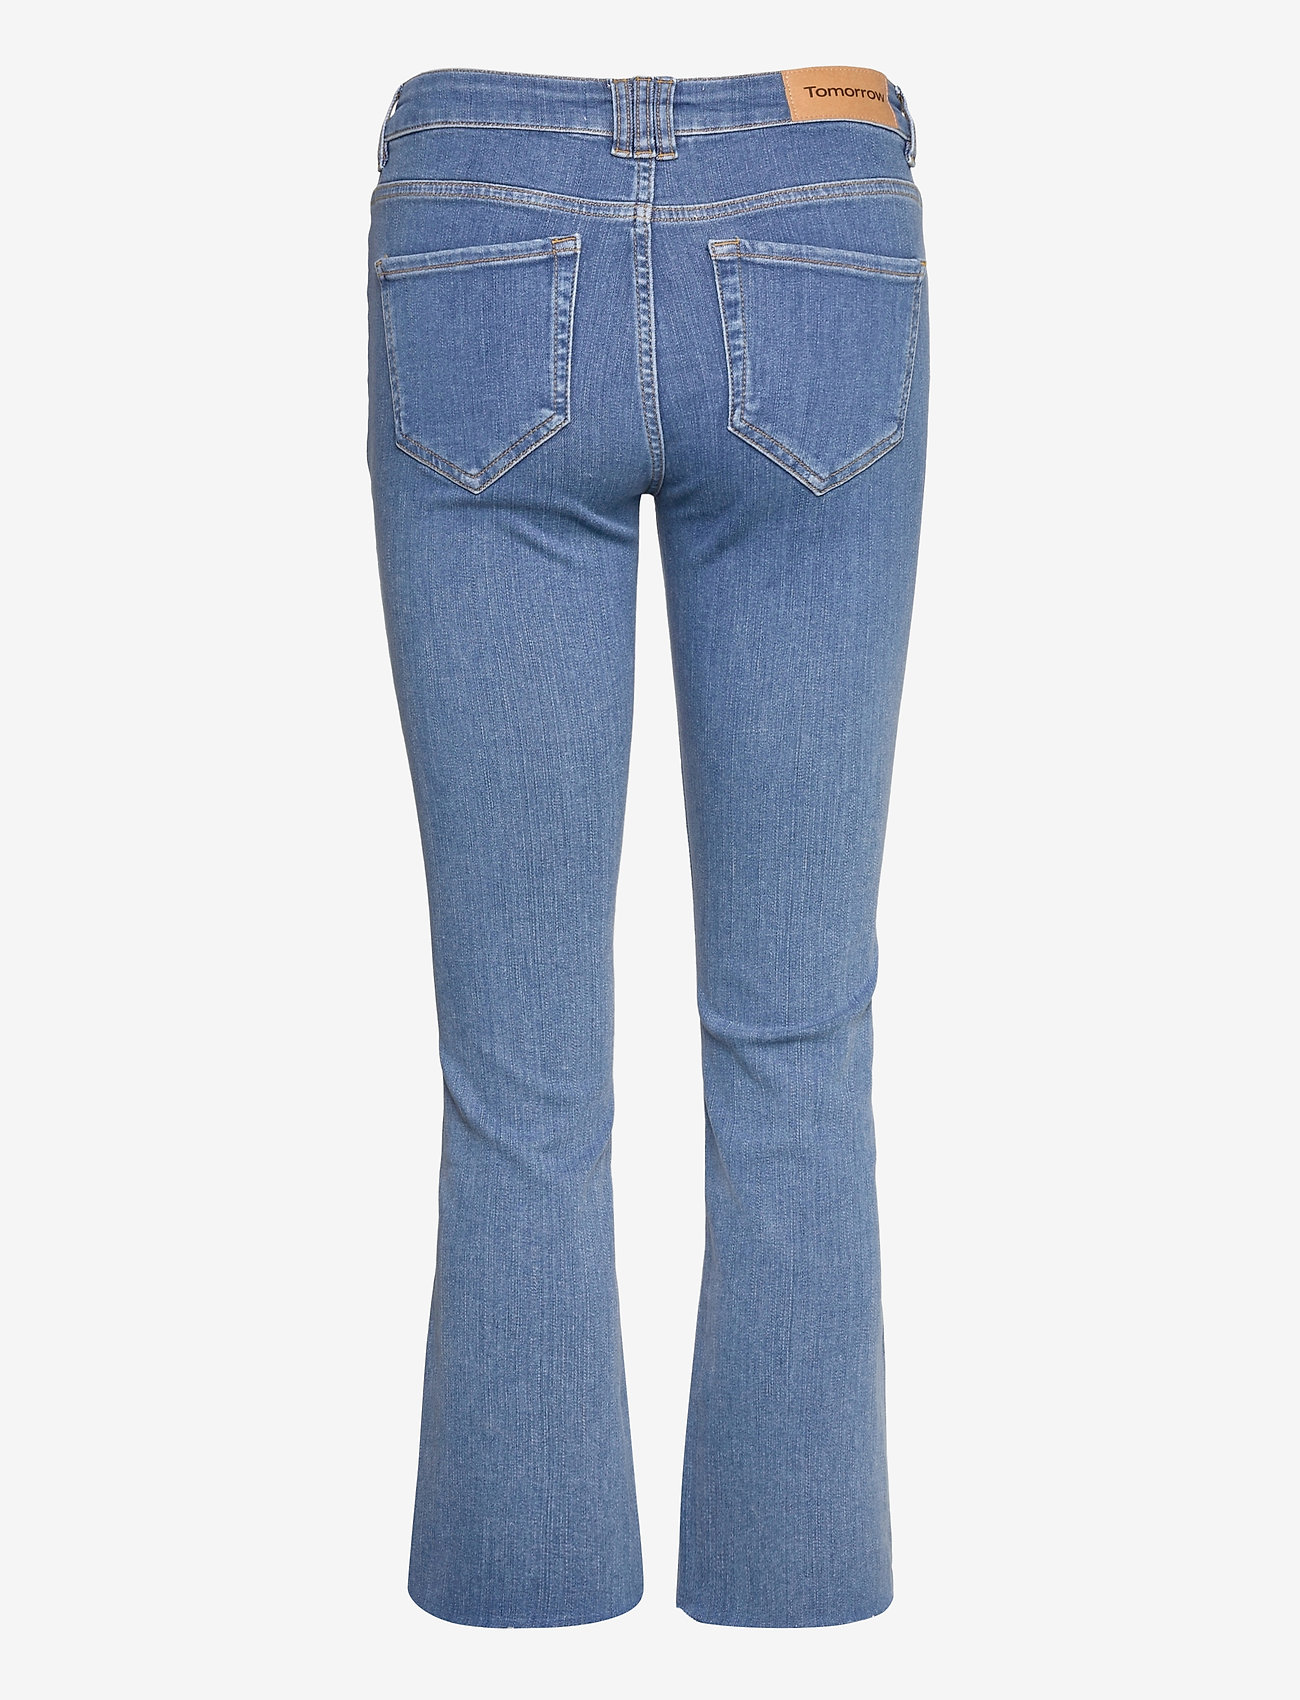 Tomorrow - Malcolm kick flare wash Savannah - skinny jeans - denim blue - 1